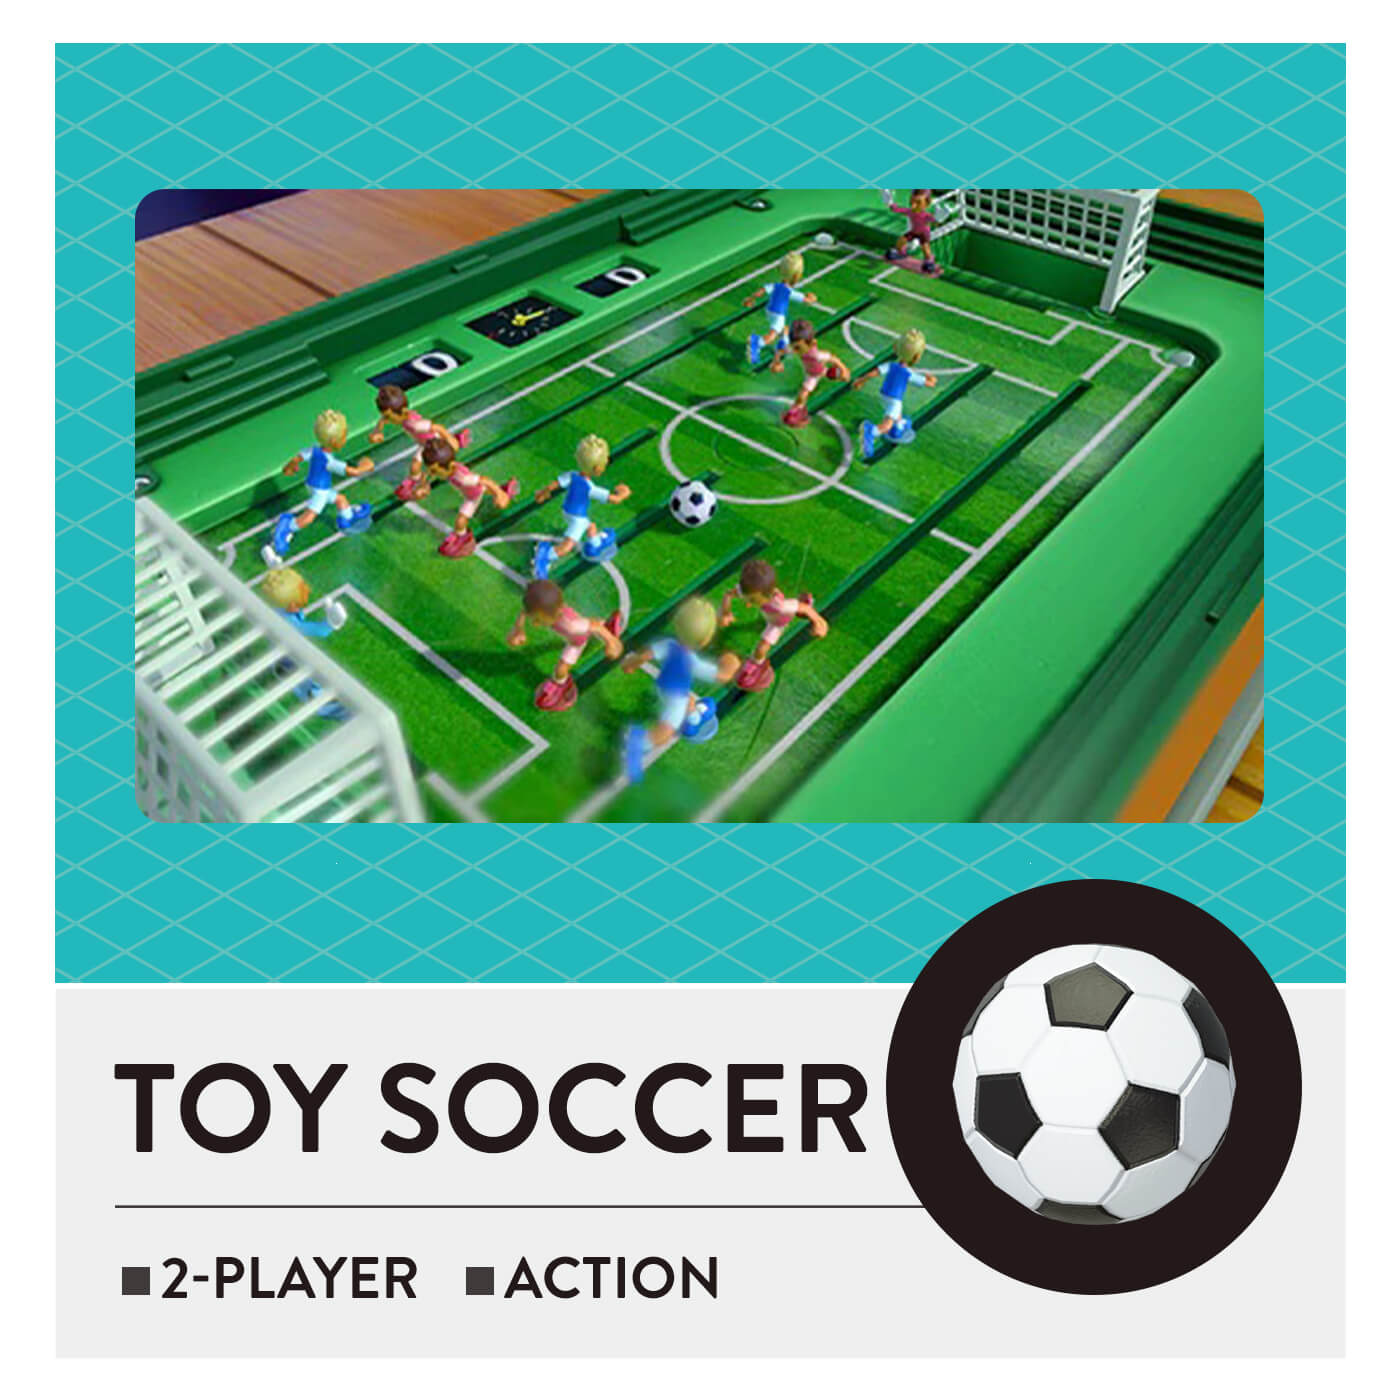 51 Worldwide Games - Toy Soccer